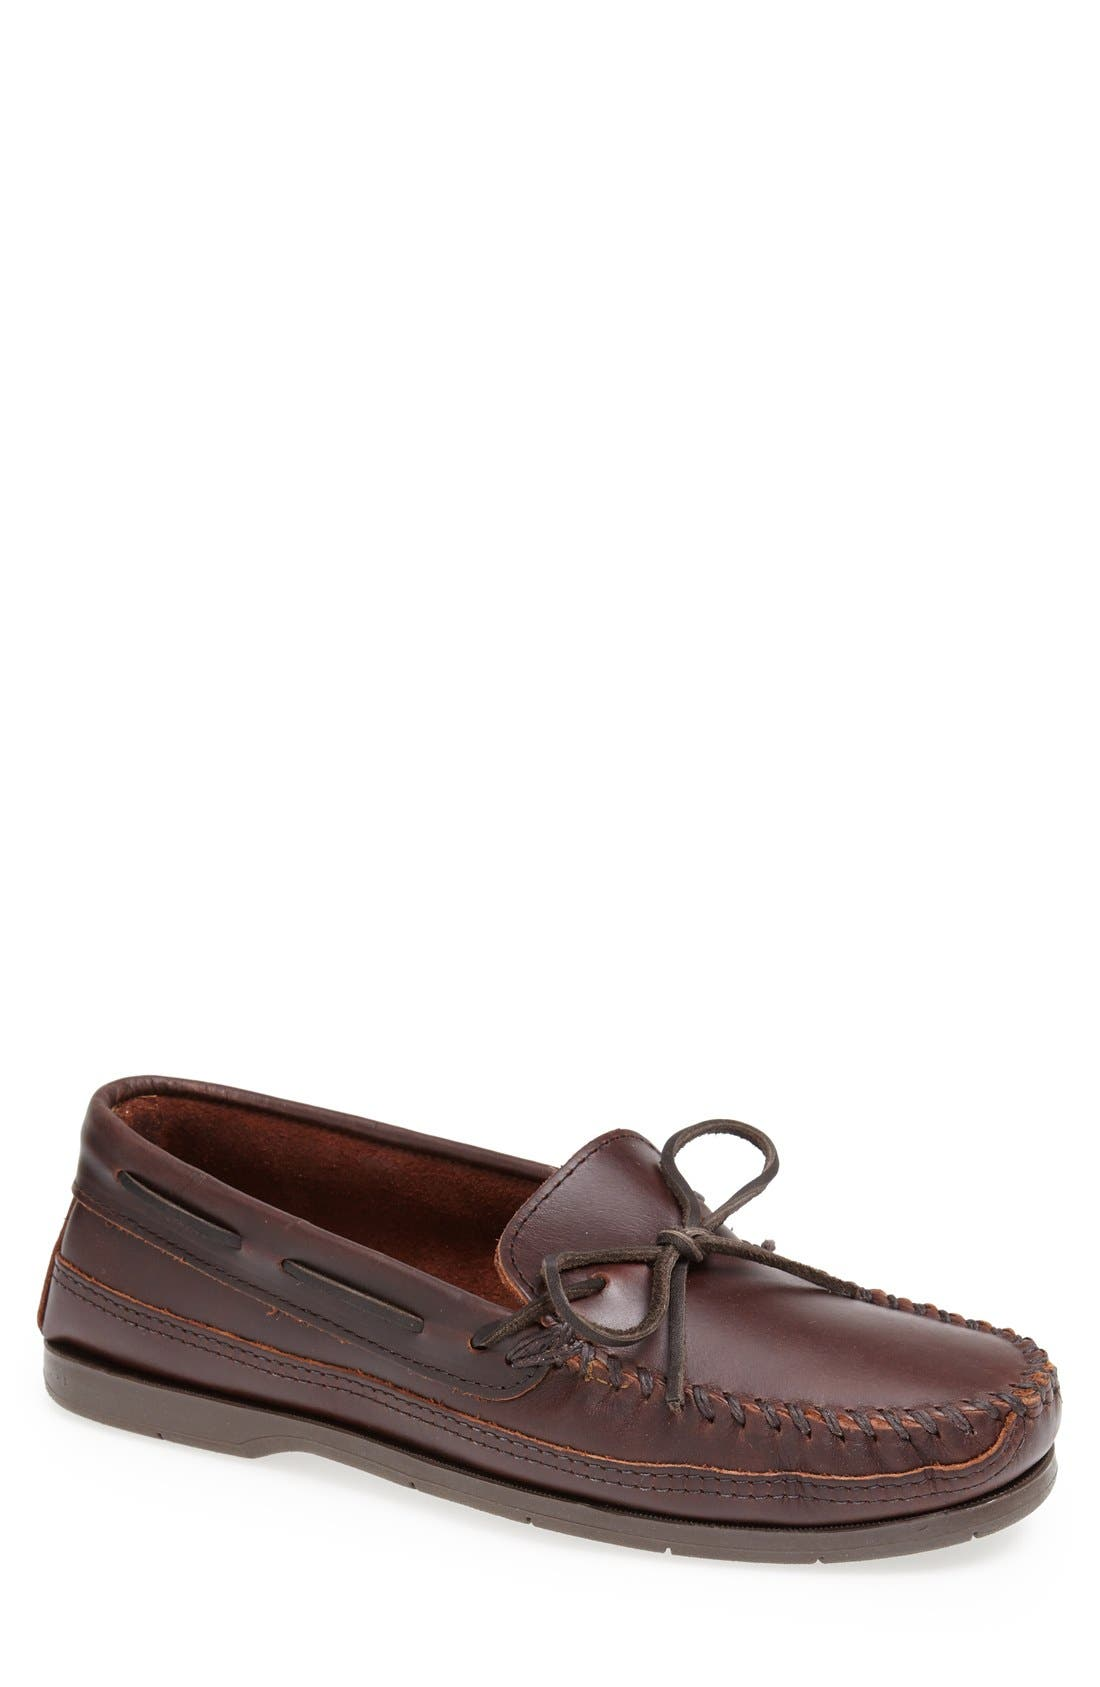 Double Sole Moccasin,                         Main,                         color, BROWN